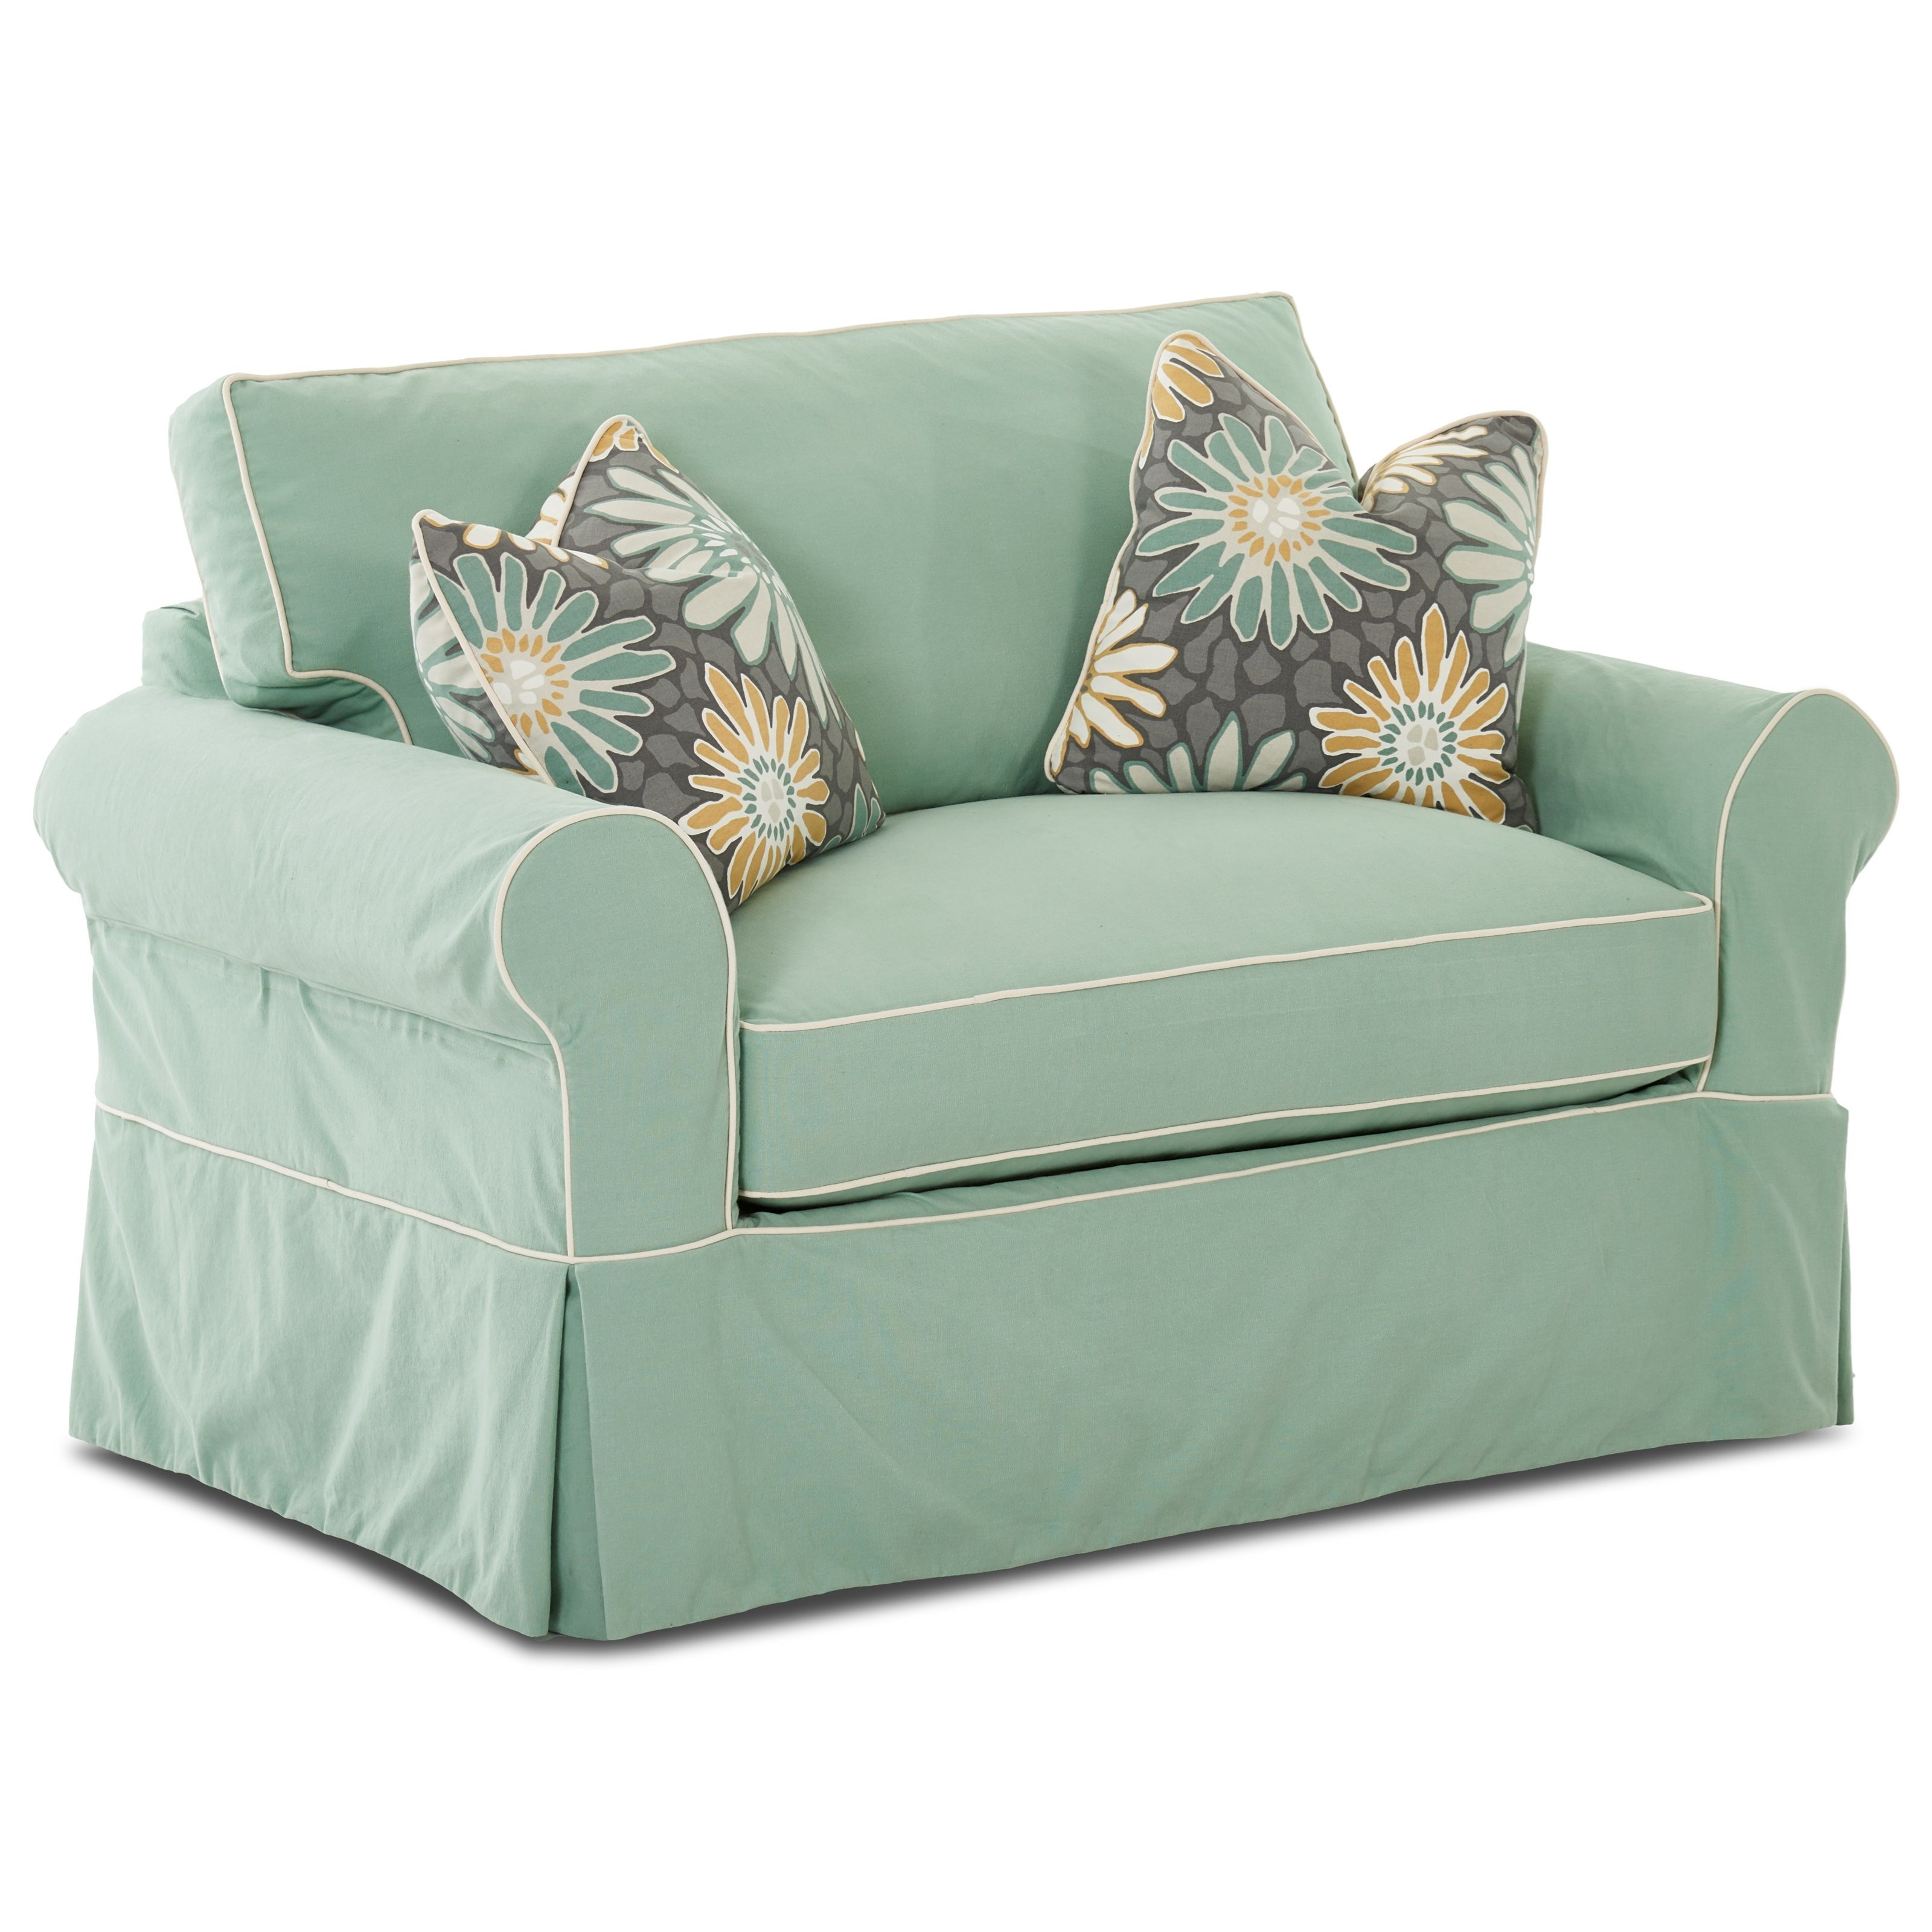 axis ii slipcovered twin sleeper sofa ashley furniture darcy reviews victoria chair with slipcover